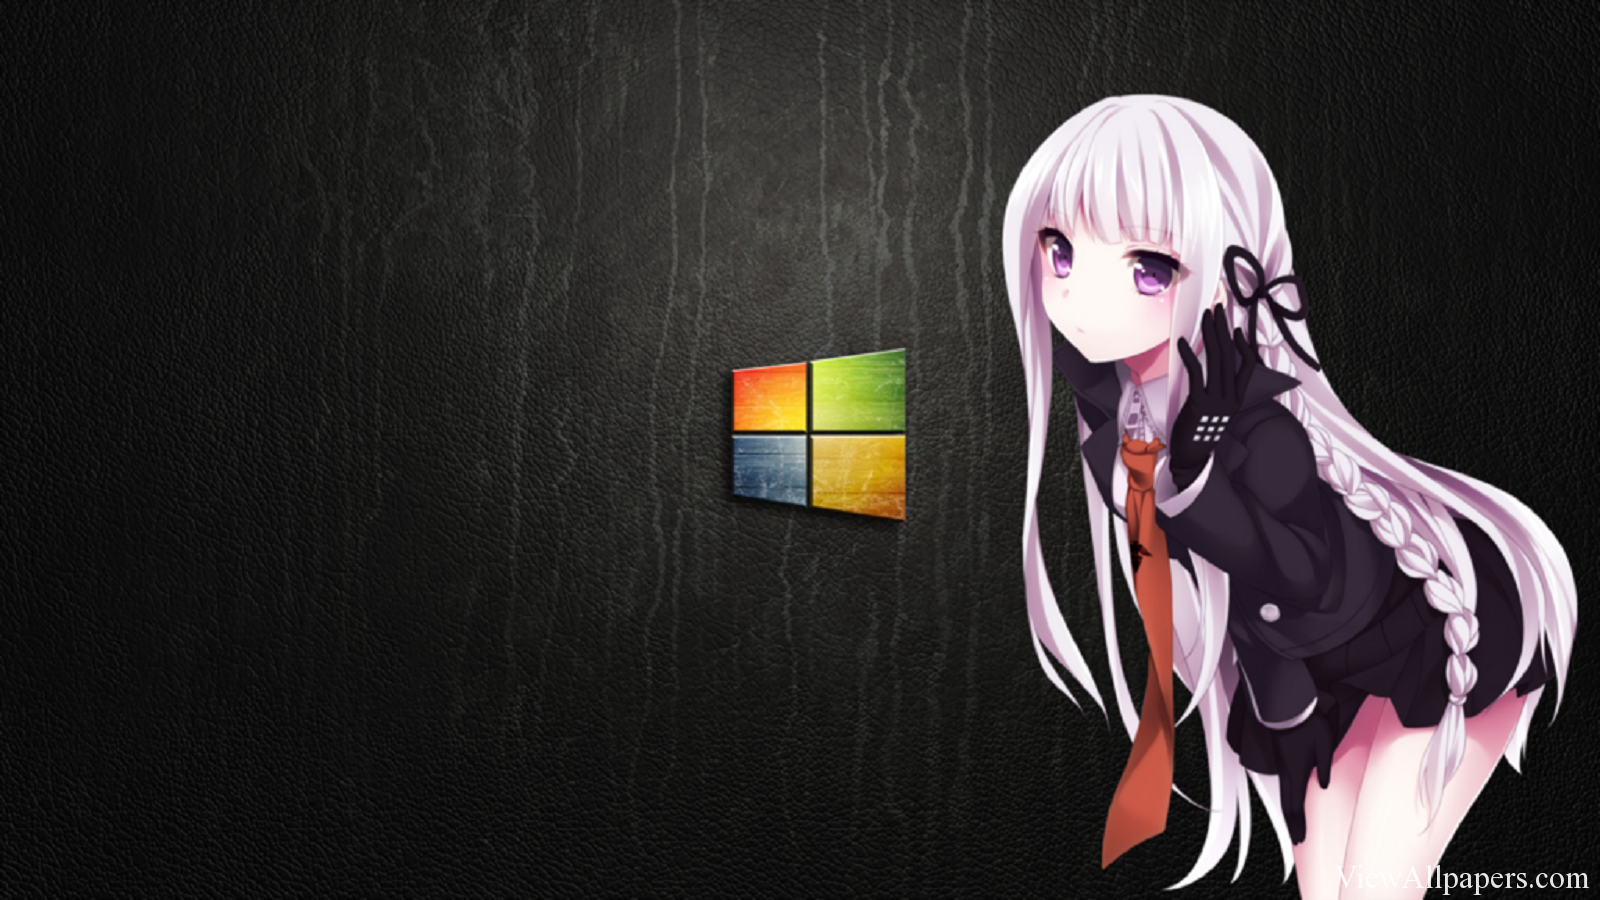 Fondos De Pc Anime: Desktop Wallpaper Anime